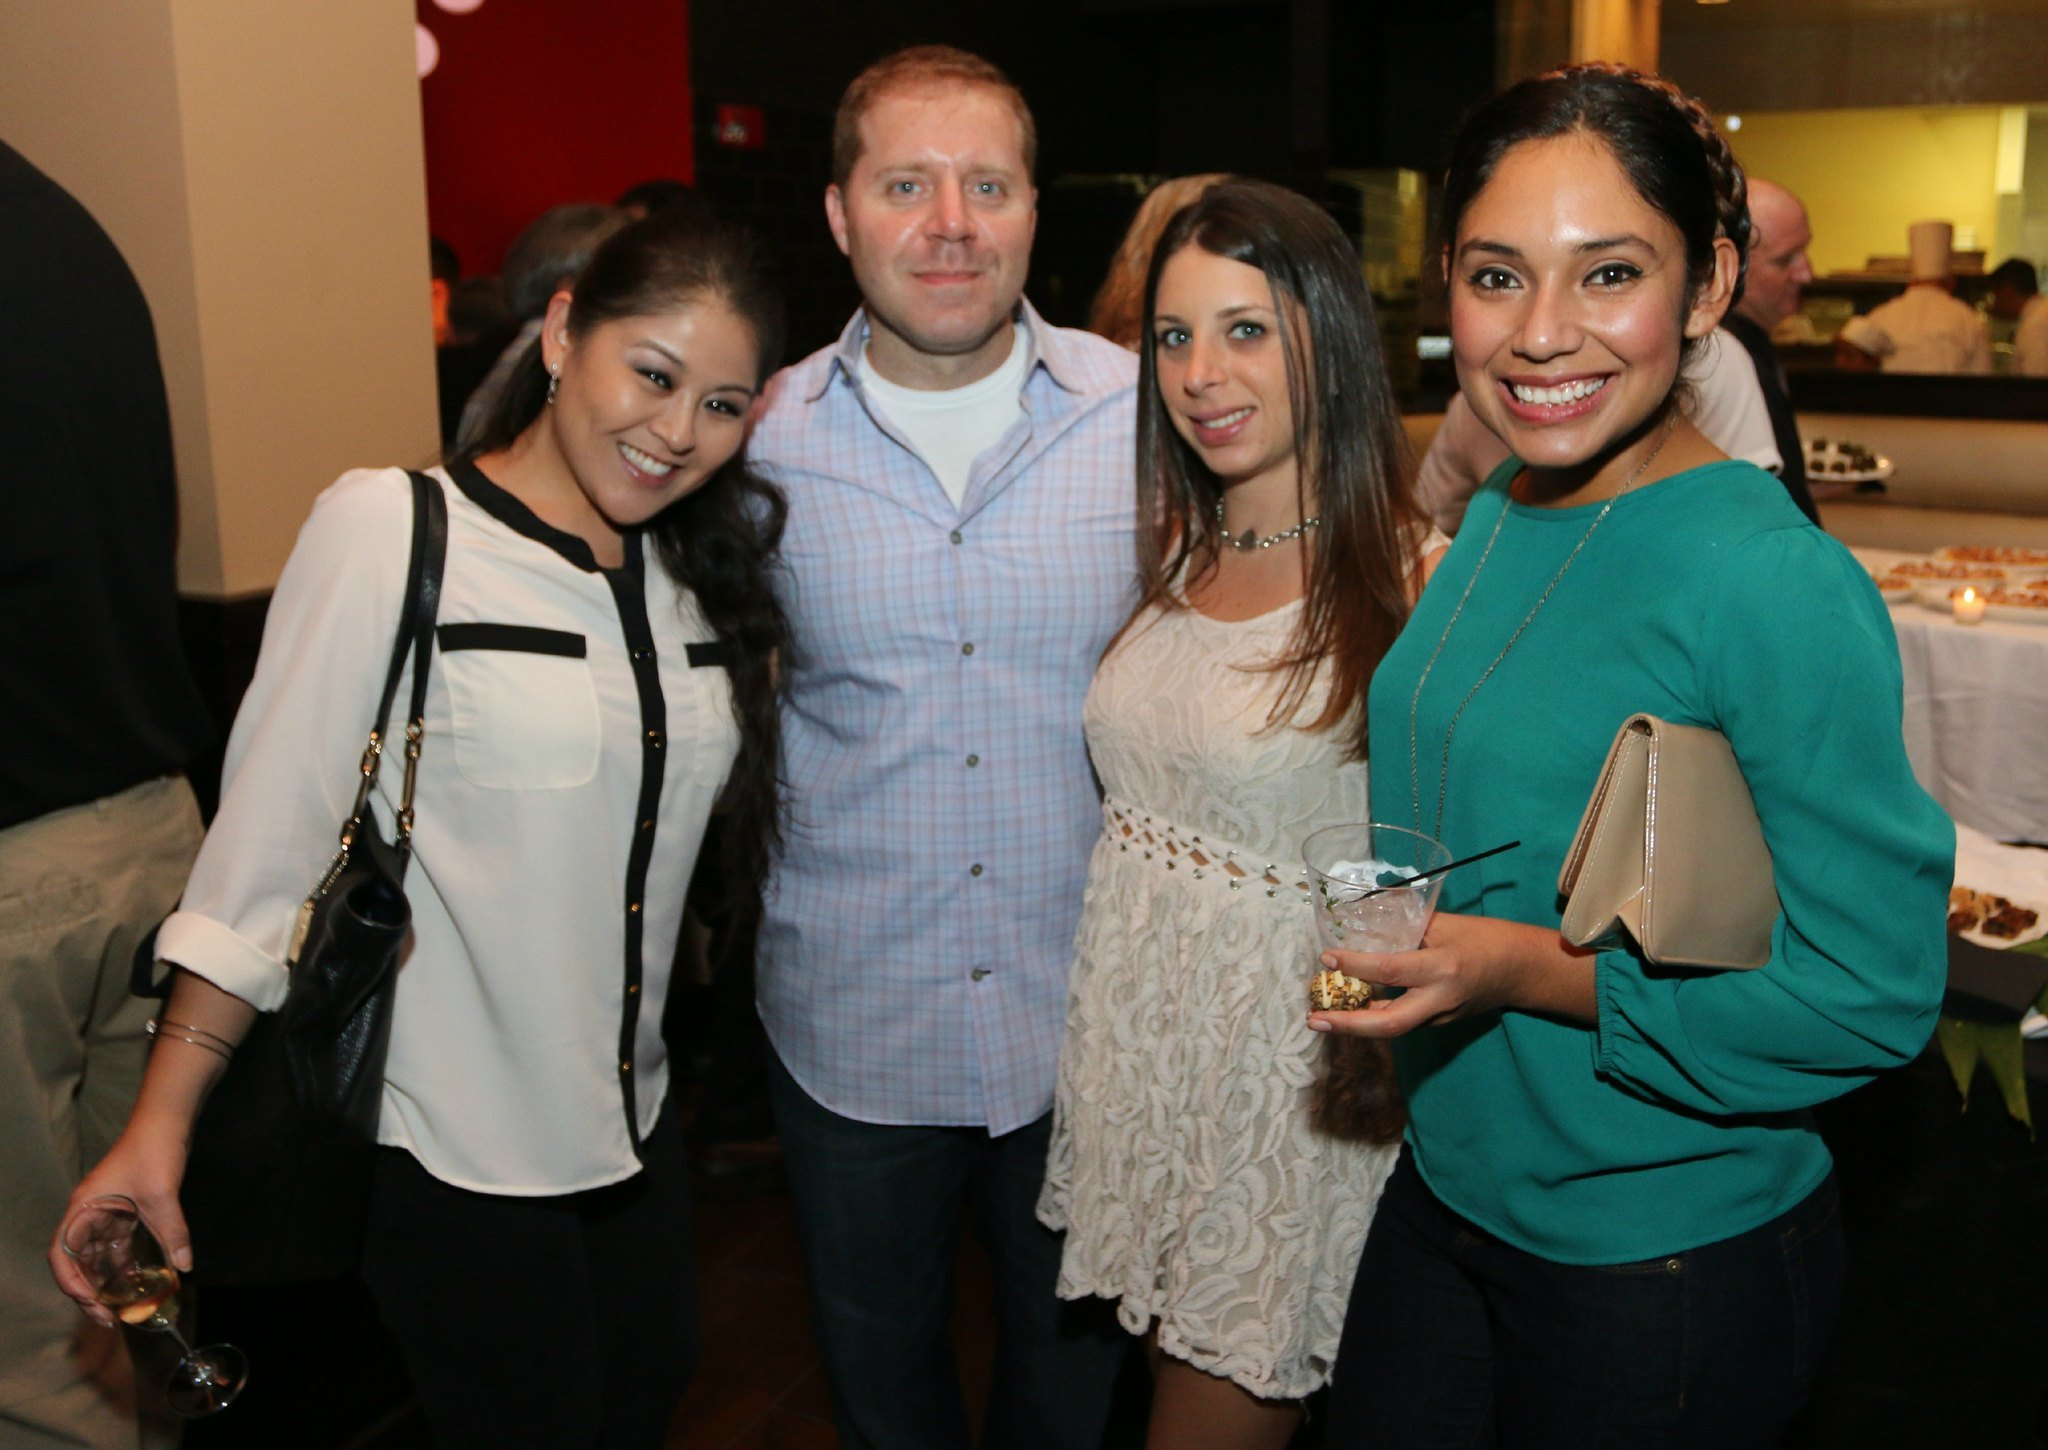 Jazziz Nightlife Grand Opening Party - Yumi Nagamatsu, Chris Pascuzzi, Amanda Friedman and Samantha Lacayo